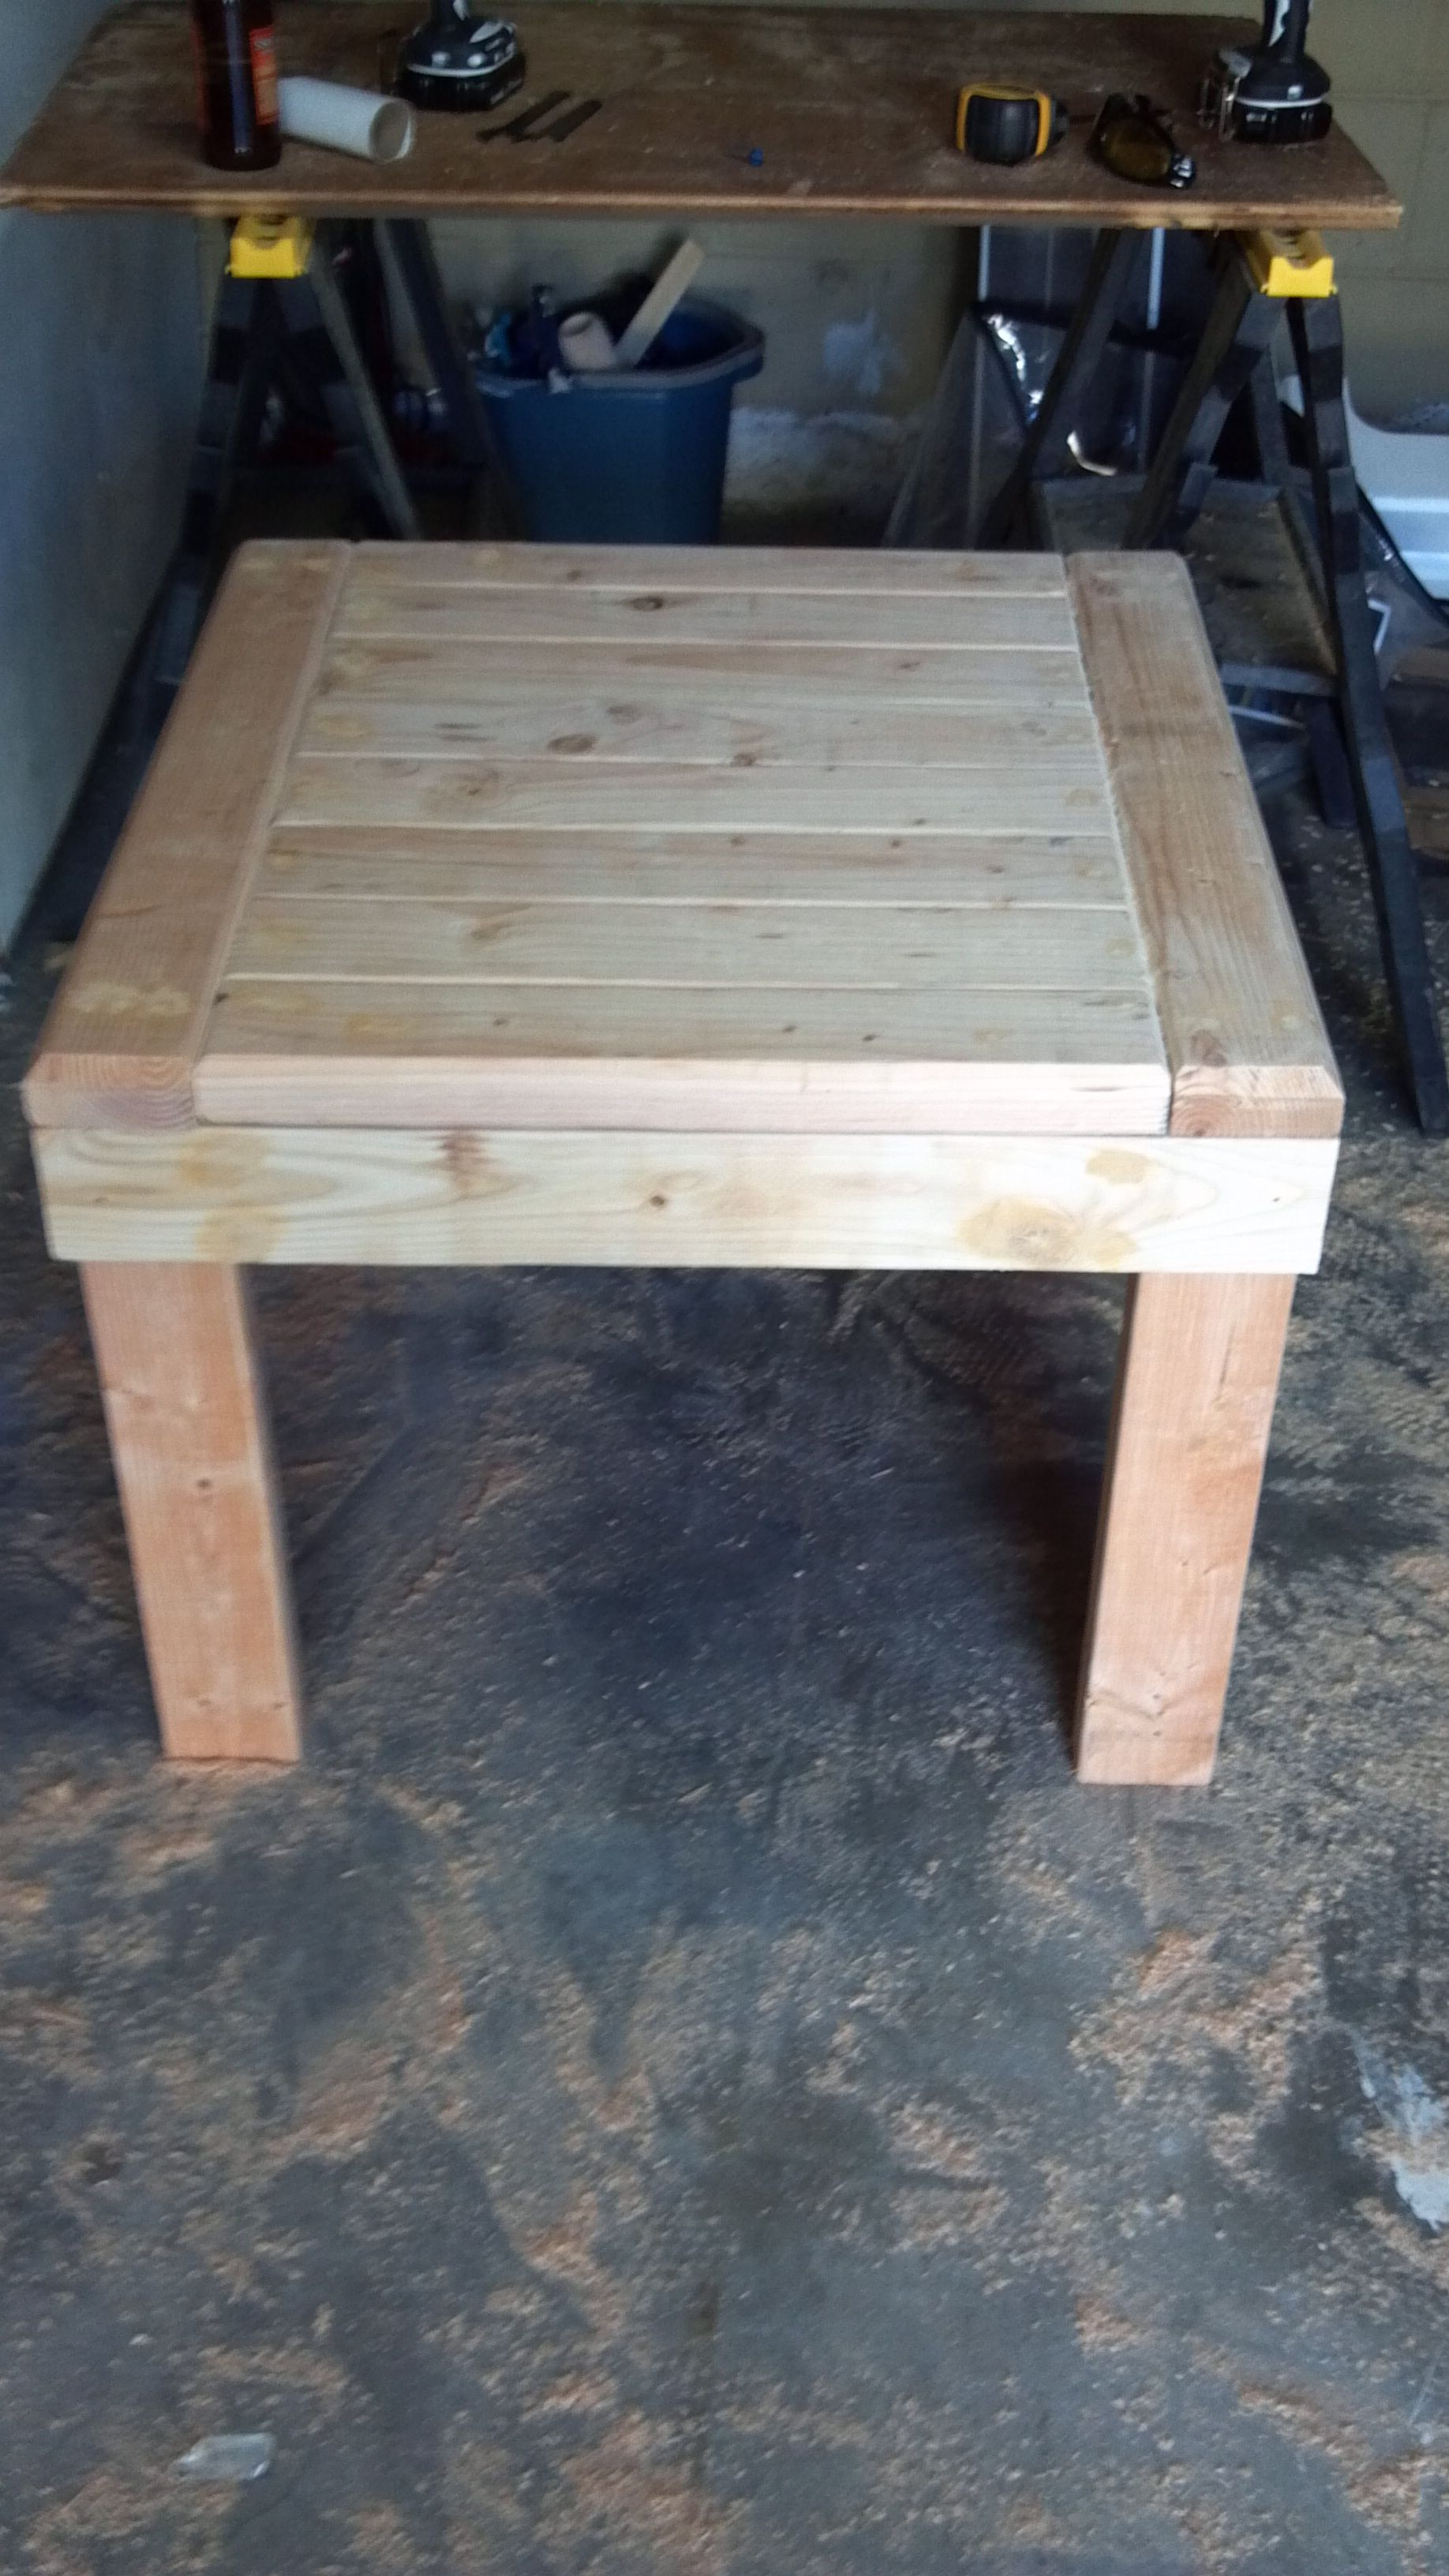 2 By 4 End Table Diy End Tables Wood Diy Wood Projects [ 3264 x 1836 Pixel ]